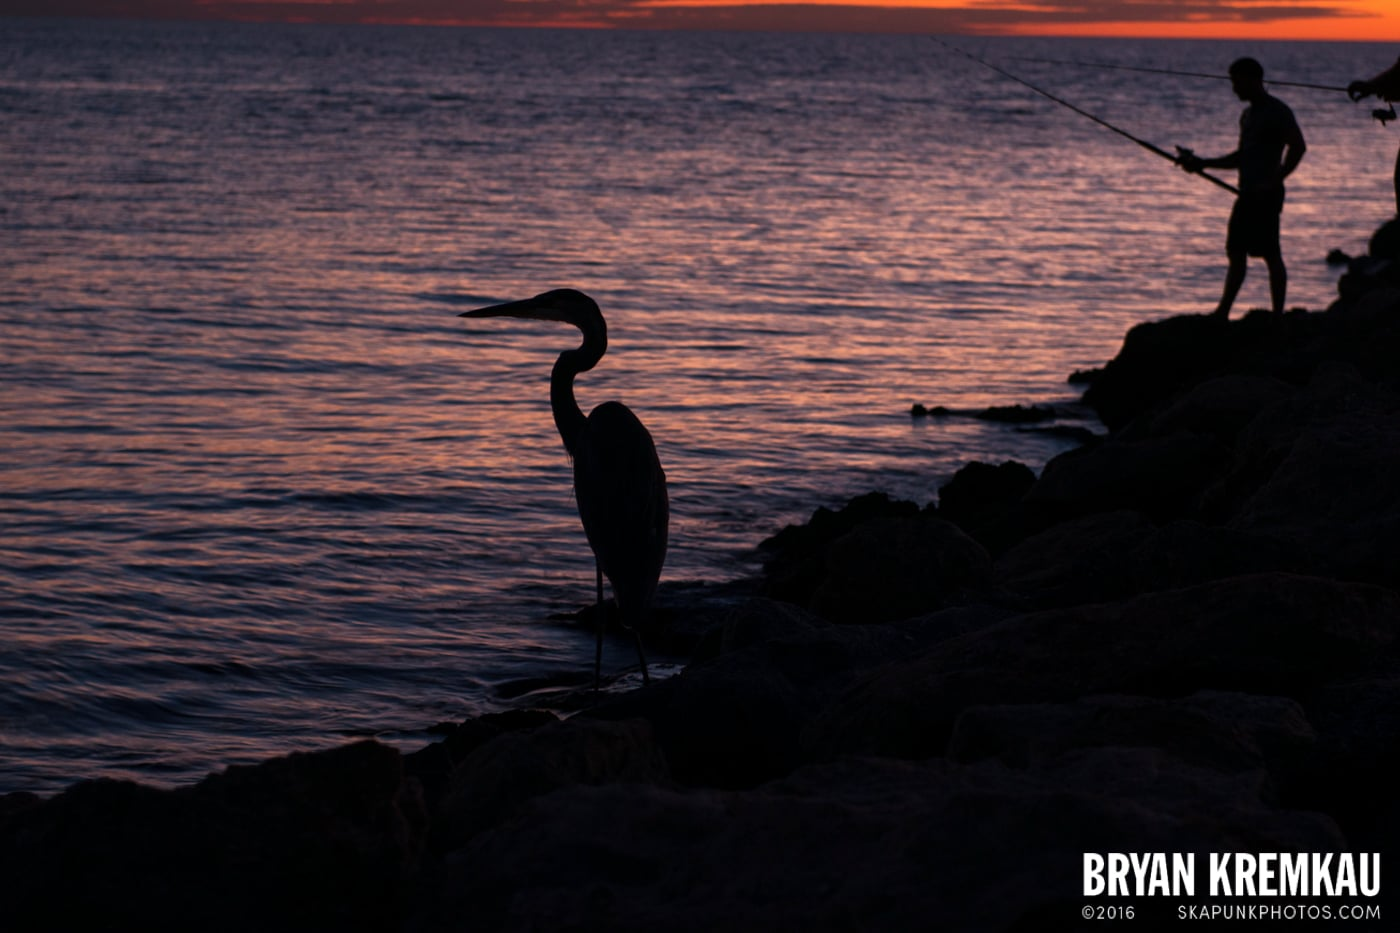 Sunsets, Astrophotography & Birds @ Venice, Florida - 10.25.14 - 11.5.14 (122)